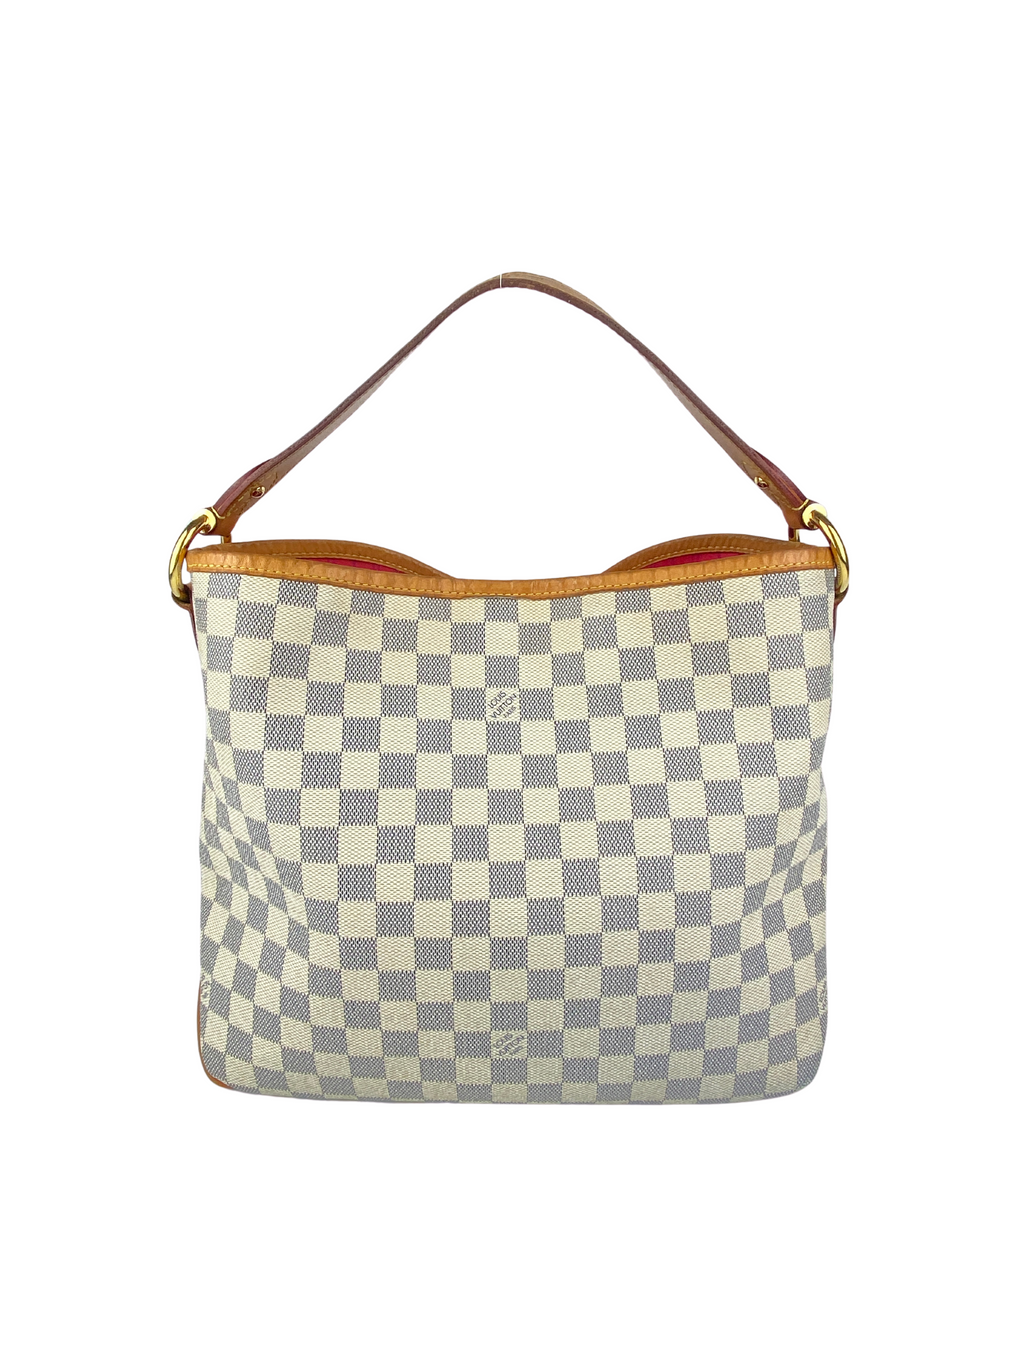 LOUIS VUITTON - DELIGHTFUL PM IN DAMIER AZUR